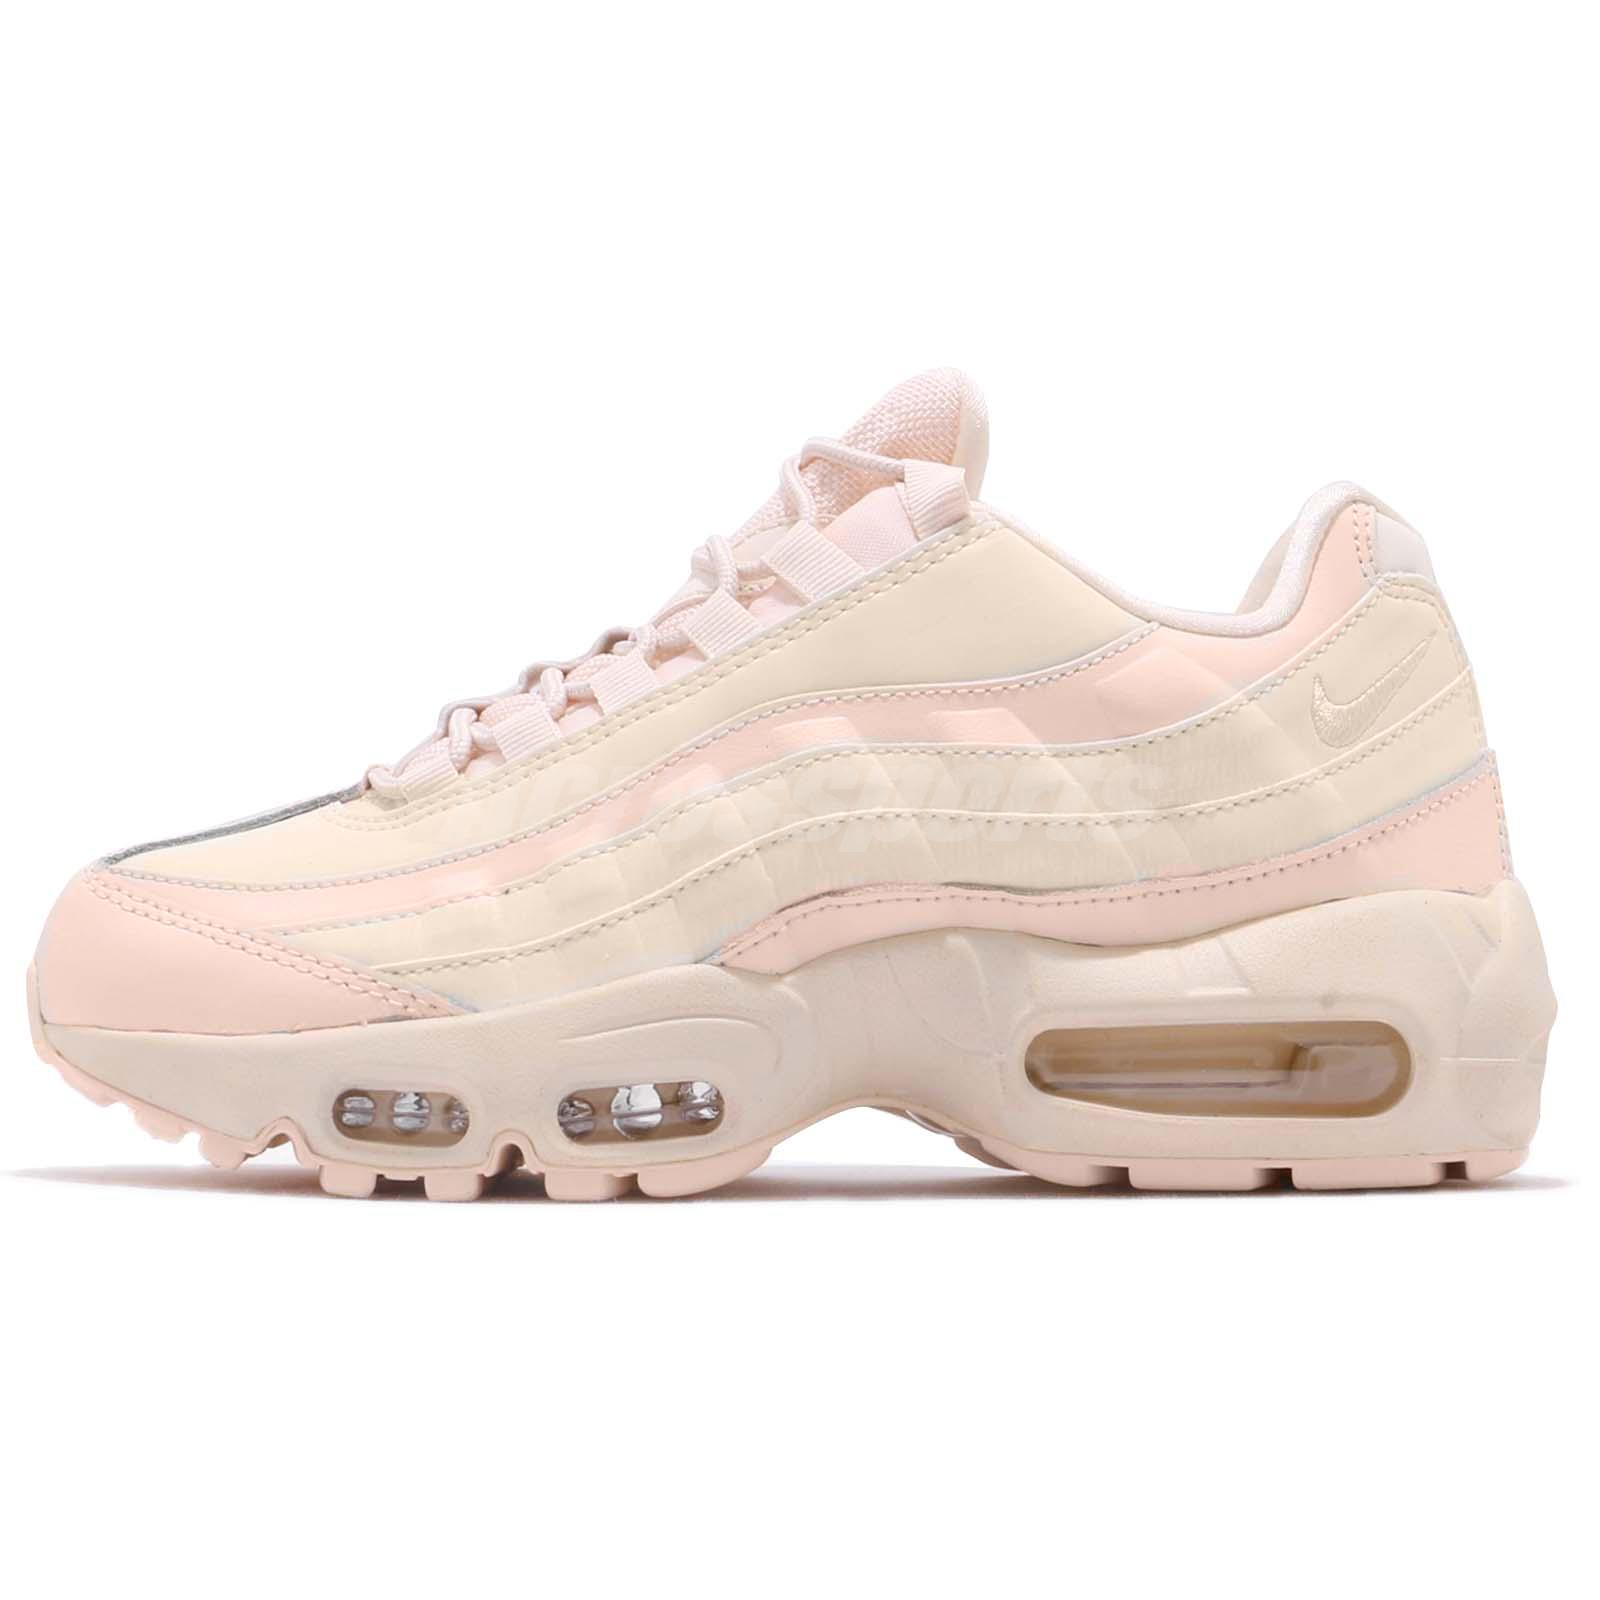 Nike Wmns Air Max 95 LX Lux Reflective Guava Ice Pink Womens Shoes  AA1103-800 a12acbdd4